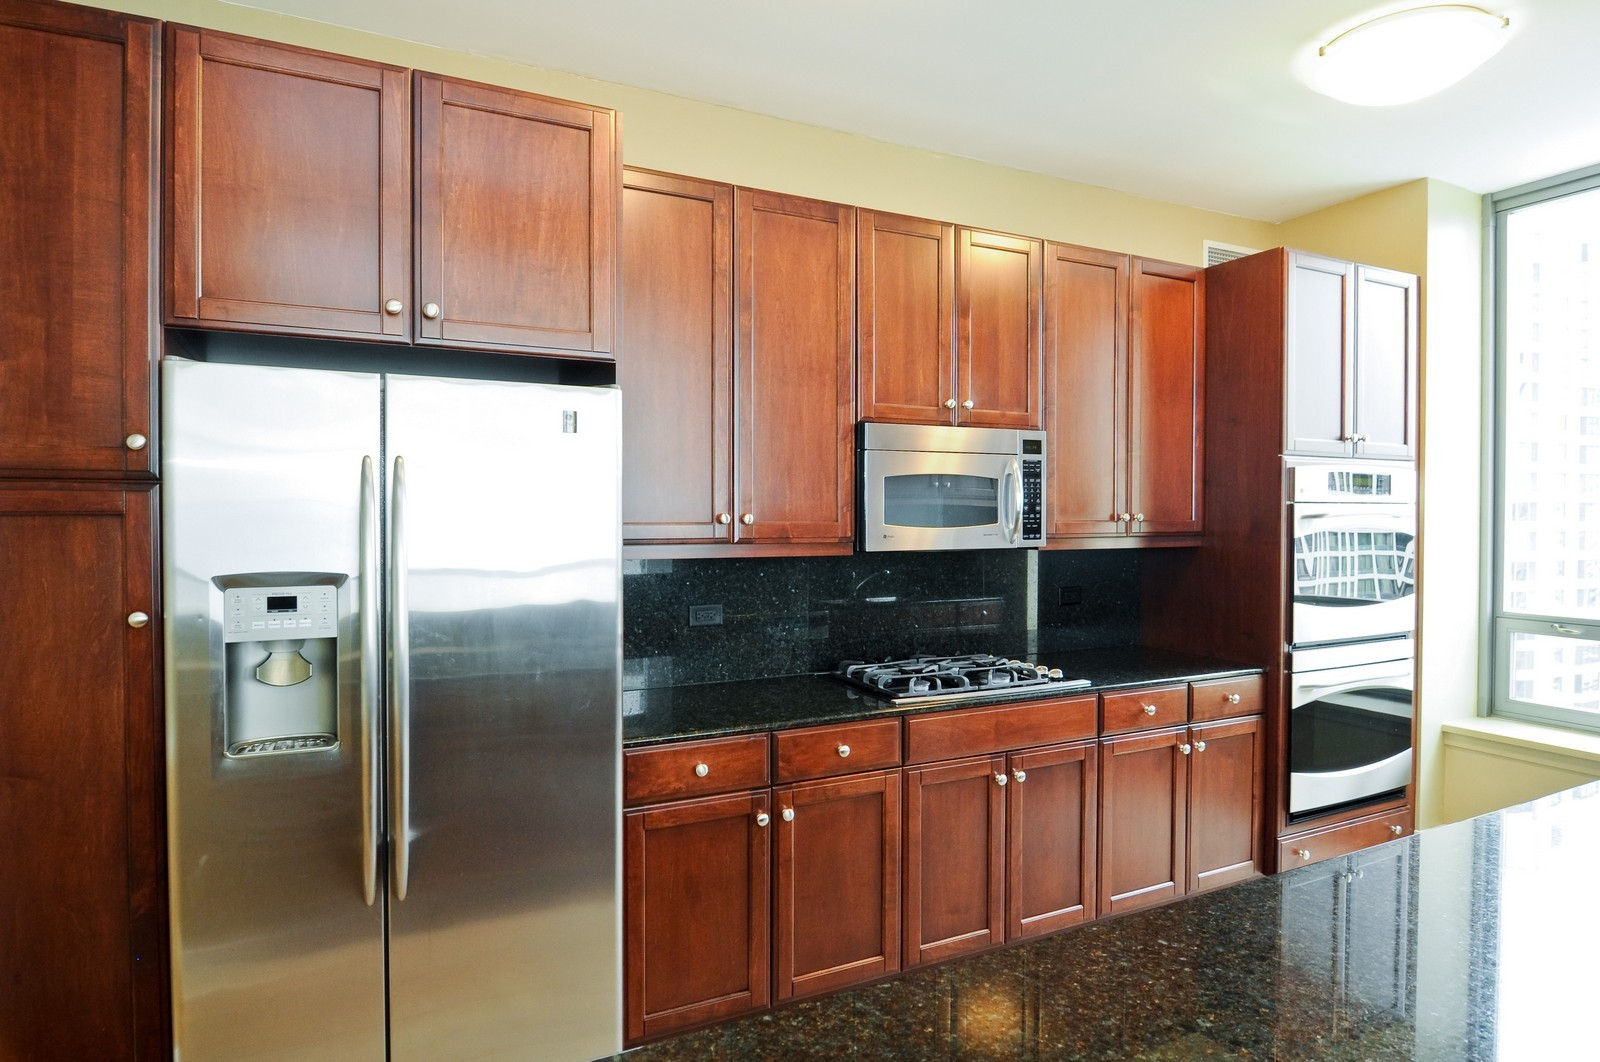 Real Estate Photography - 600 N Lake Shore Dr, Unit 2601, Chicago, IL, 60611 - Kitchen